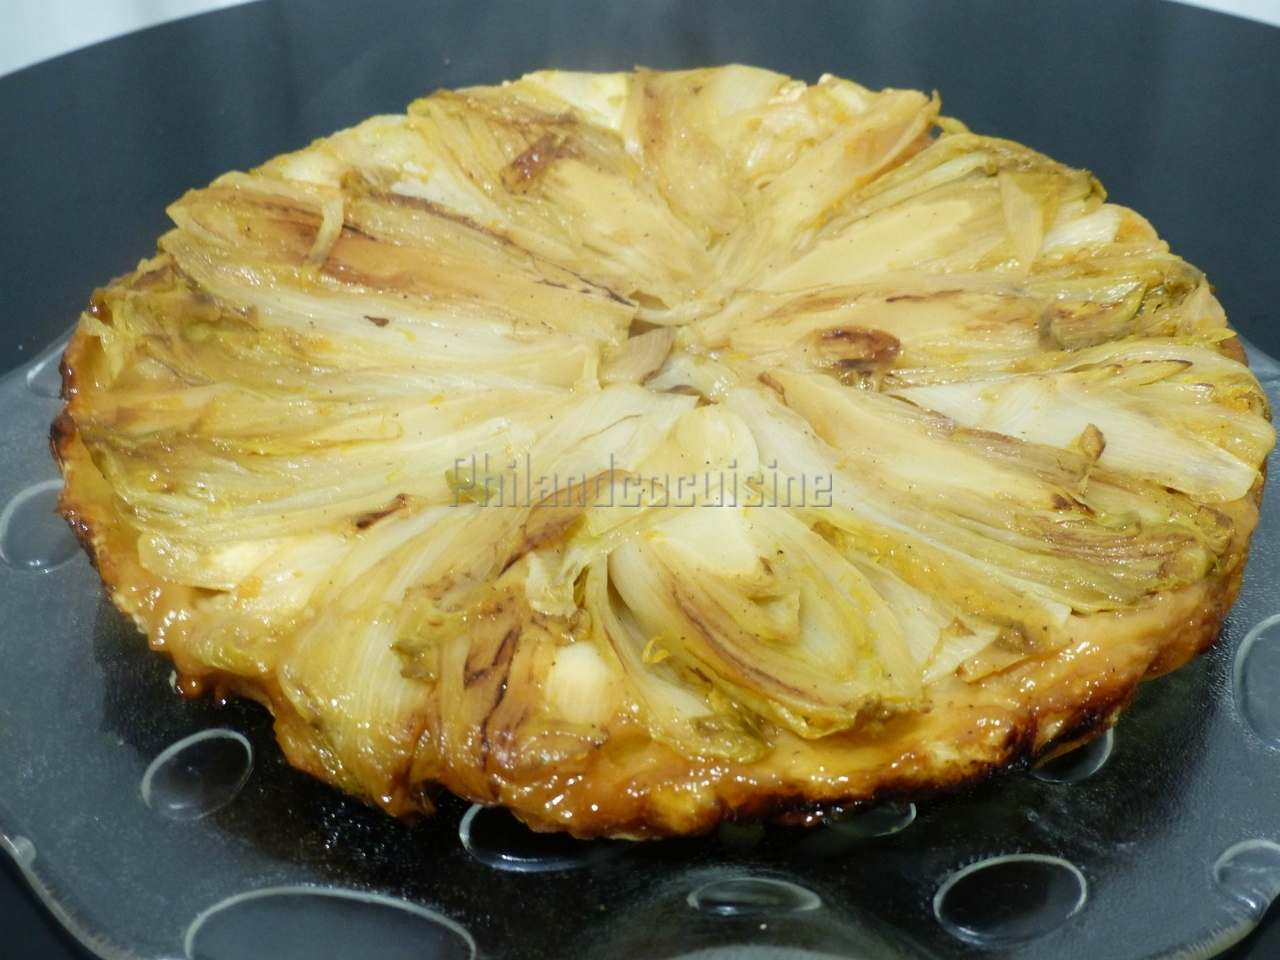 Tatin d'endives au chèvre et à l'orange